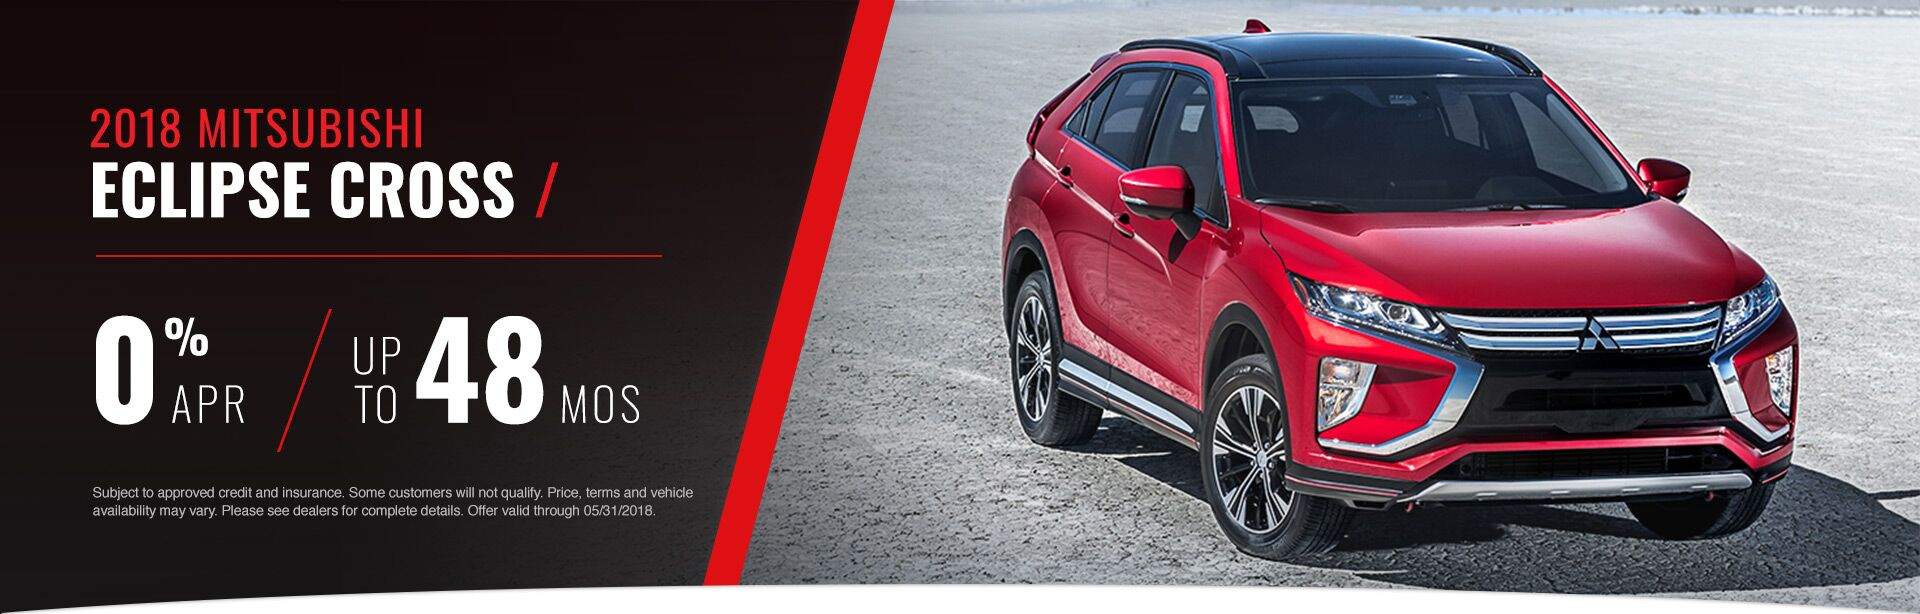 2018 Eclipse Cross May Offer